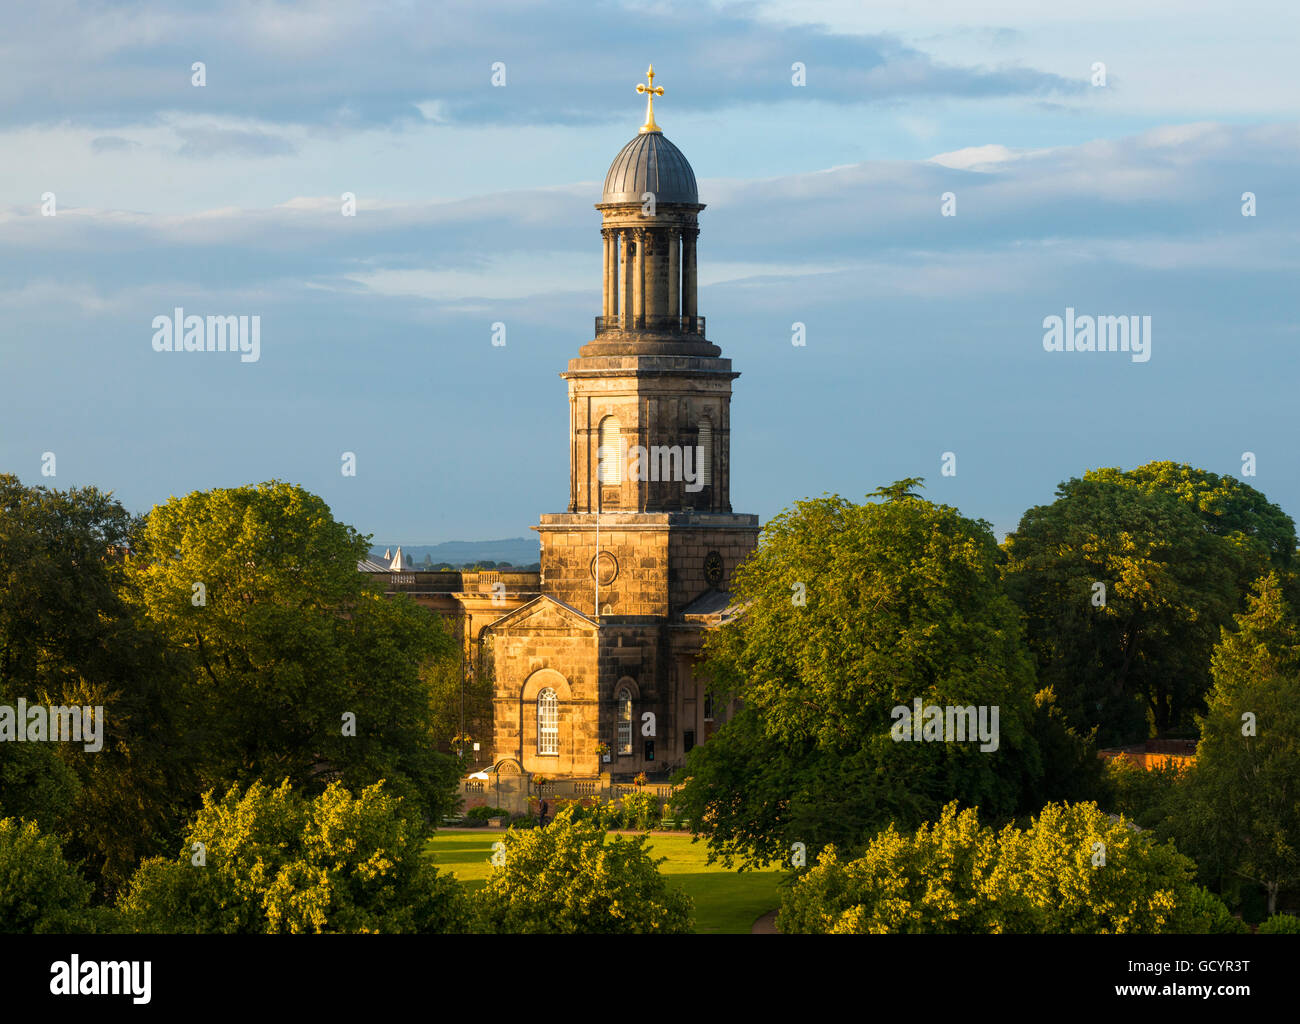 Evening light on St Chad's Church and the Quarry in Shrewsbury, Shropshire, England, UK. - Stock Image